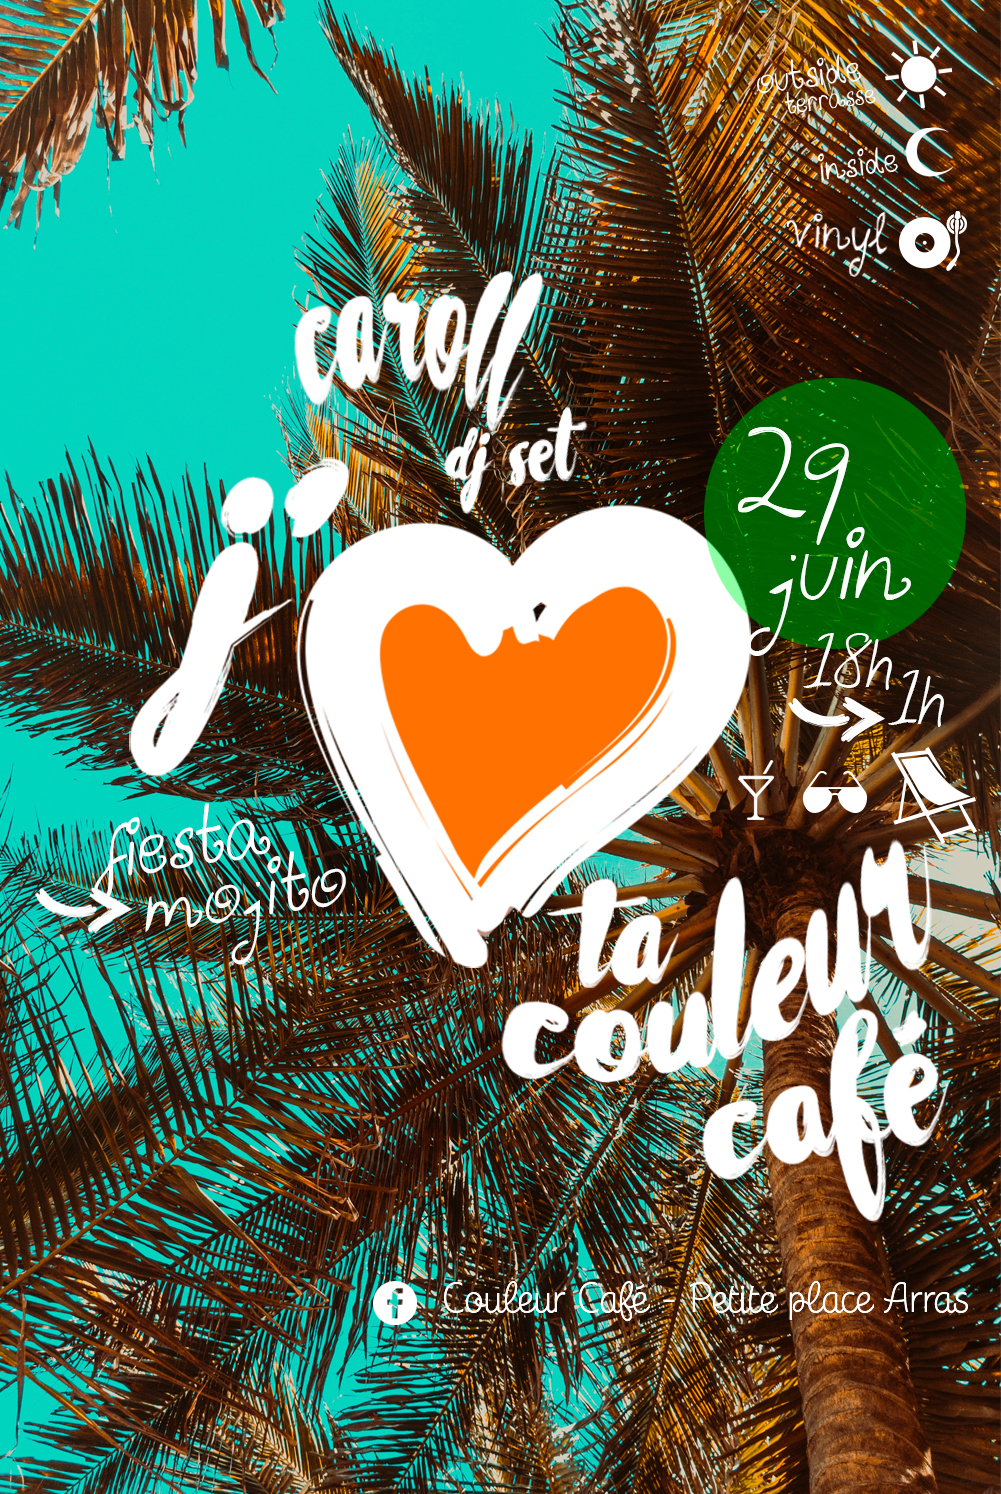 J'aime ta couleur café mix by Caroll